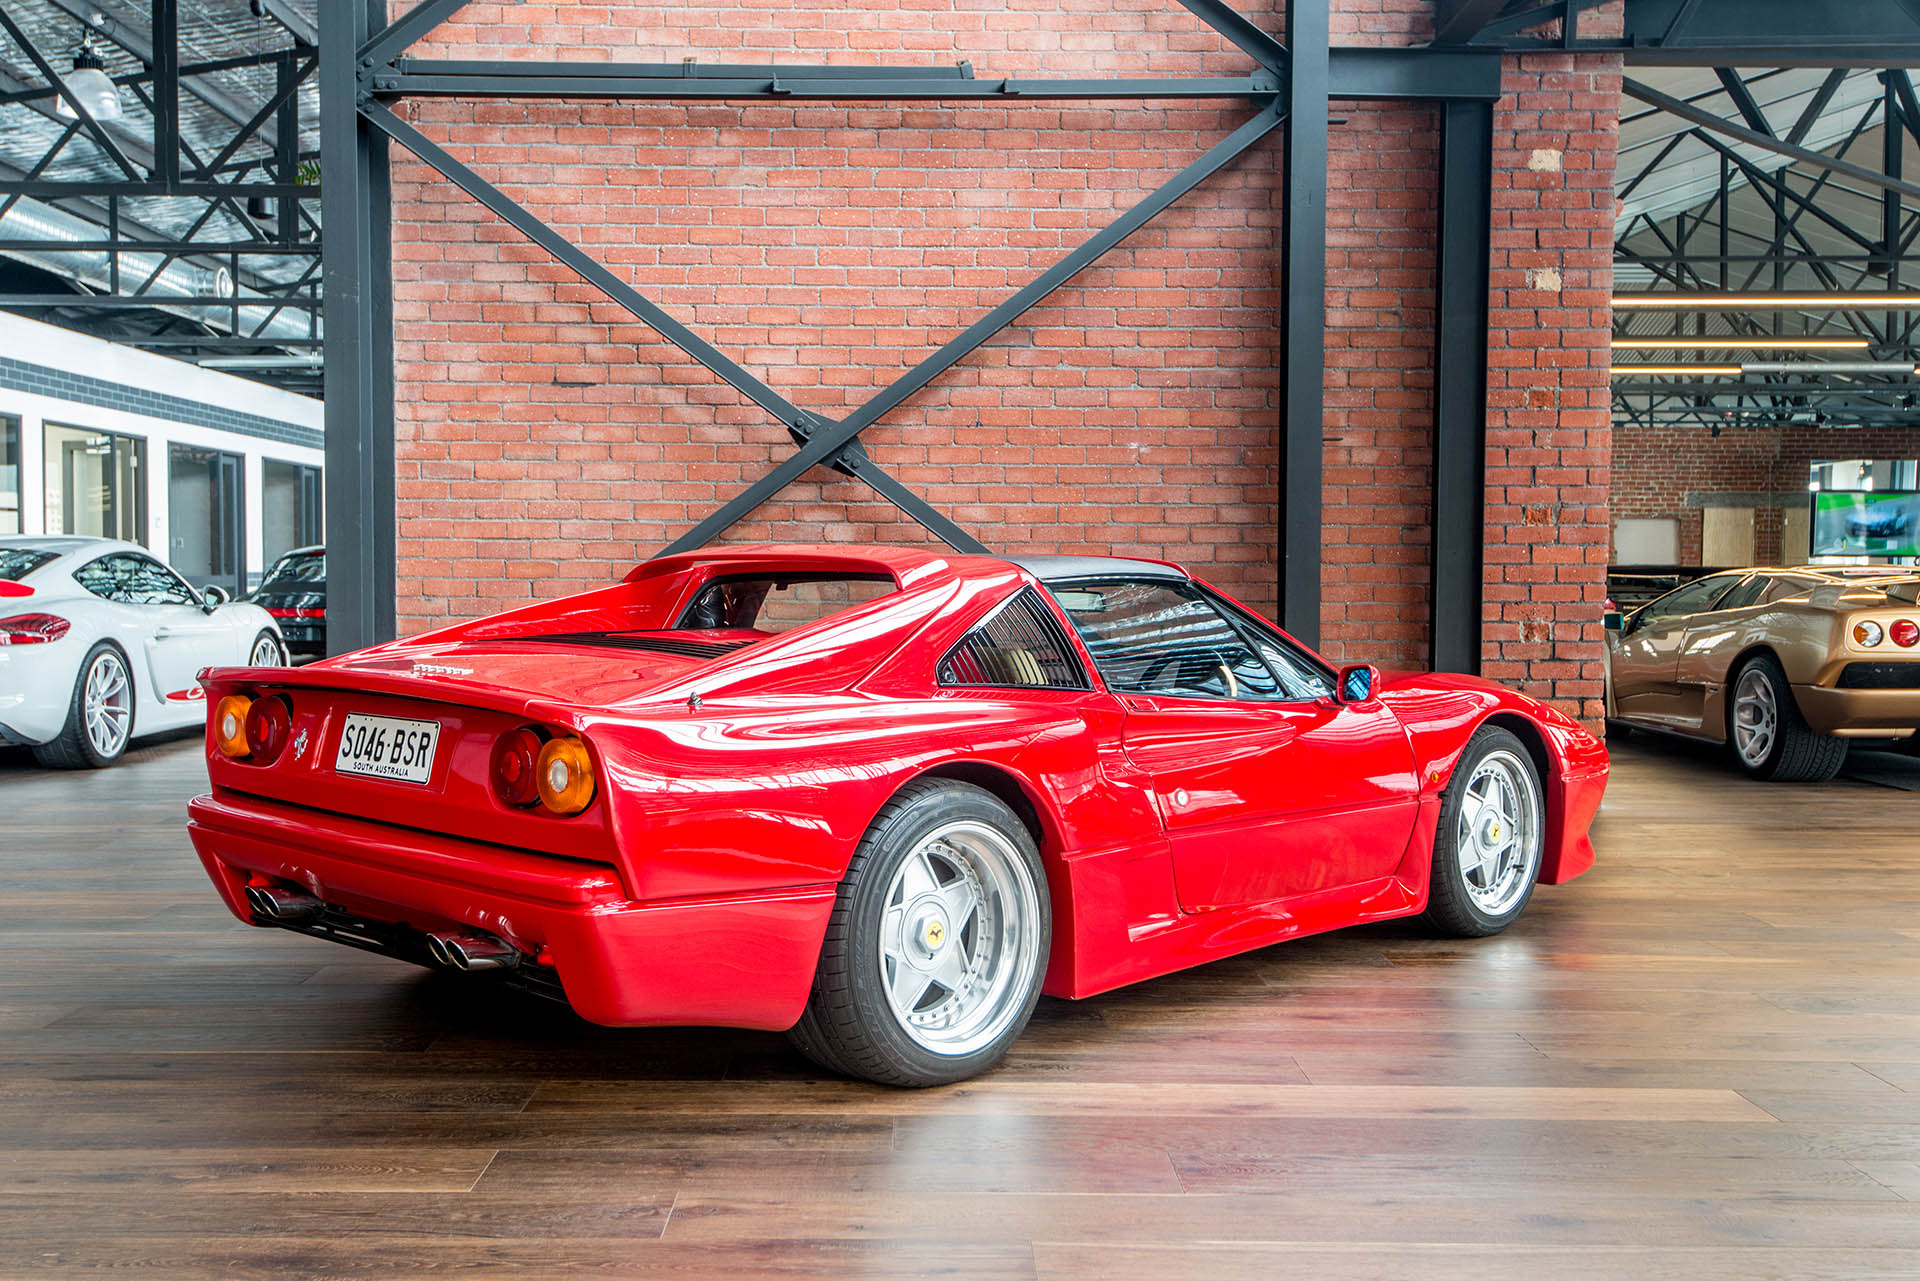 German Cars For Sale >> 1989 Ferrari 328 GTS - Richmonds - Classic and Prestige Cars - Storage and Sales - Adelaide ...